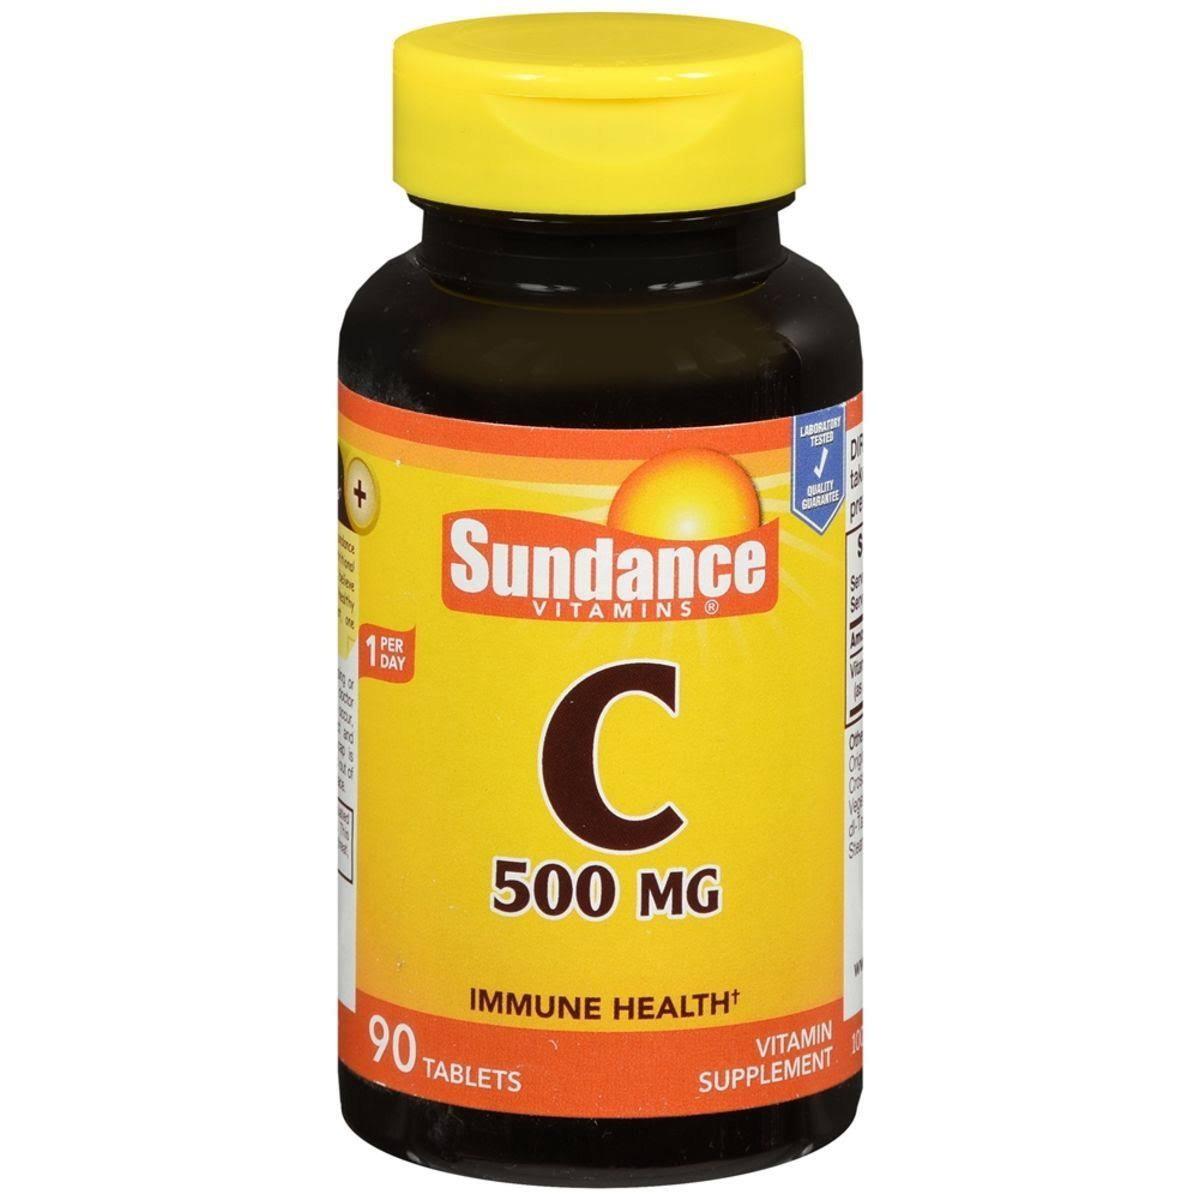 Sundance Vitamin C Vitamin Supplement - 500mg, 90 Tablets